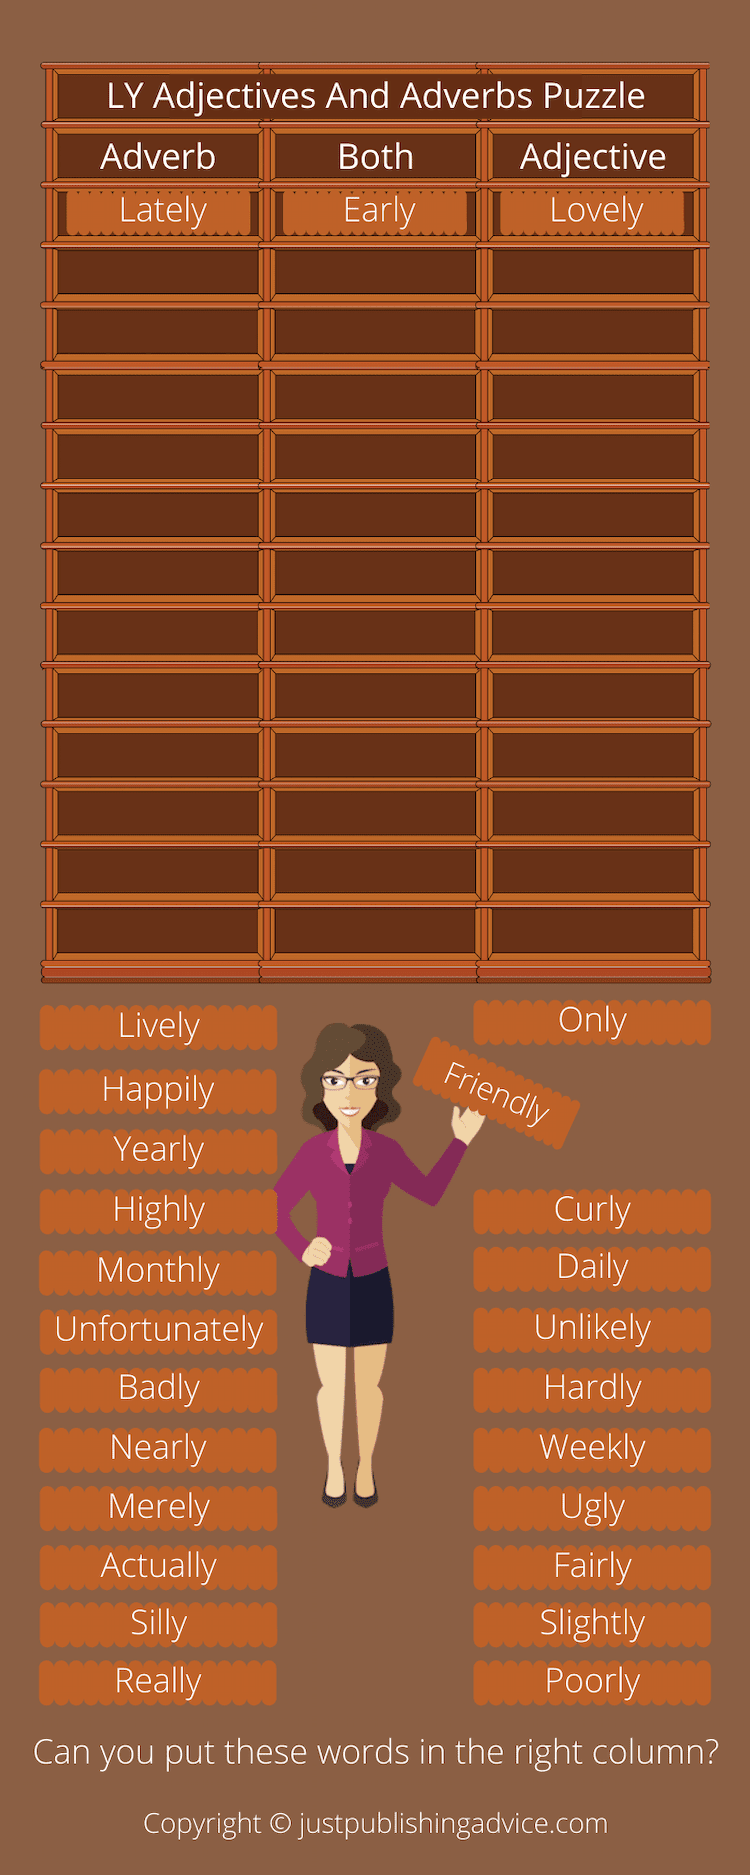 LY Adjectives And Adverbs Puzzle